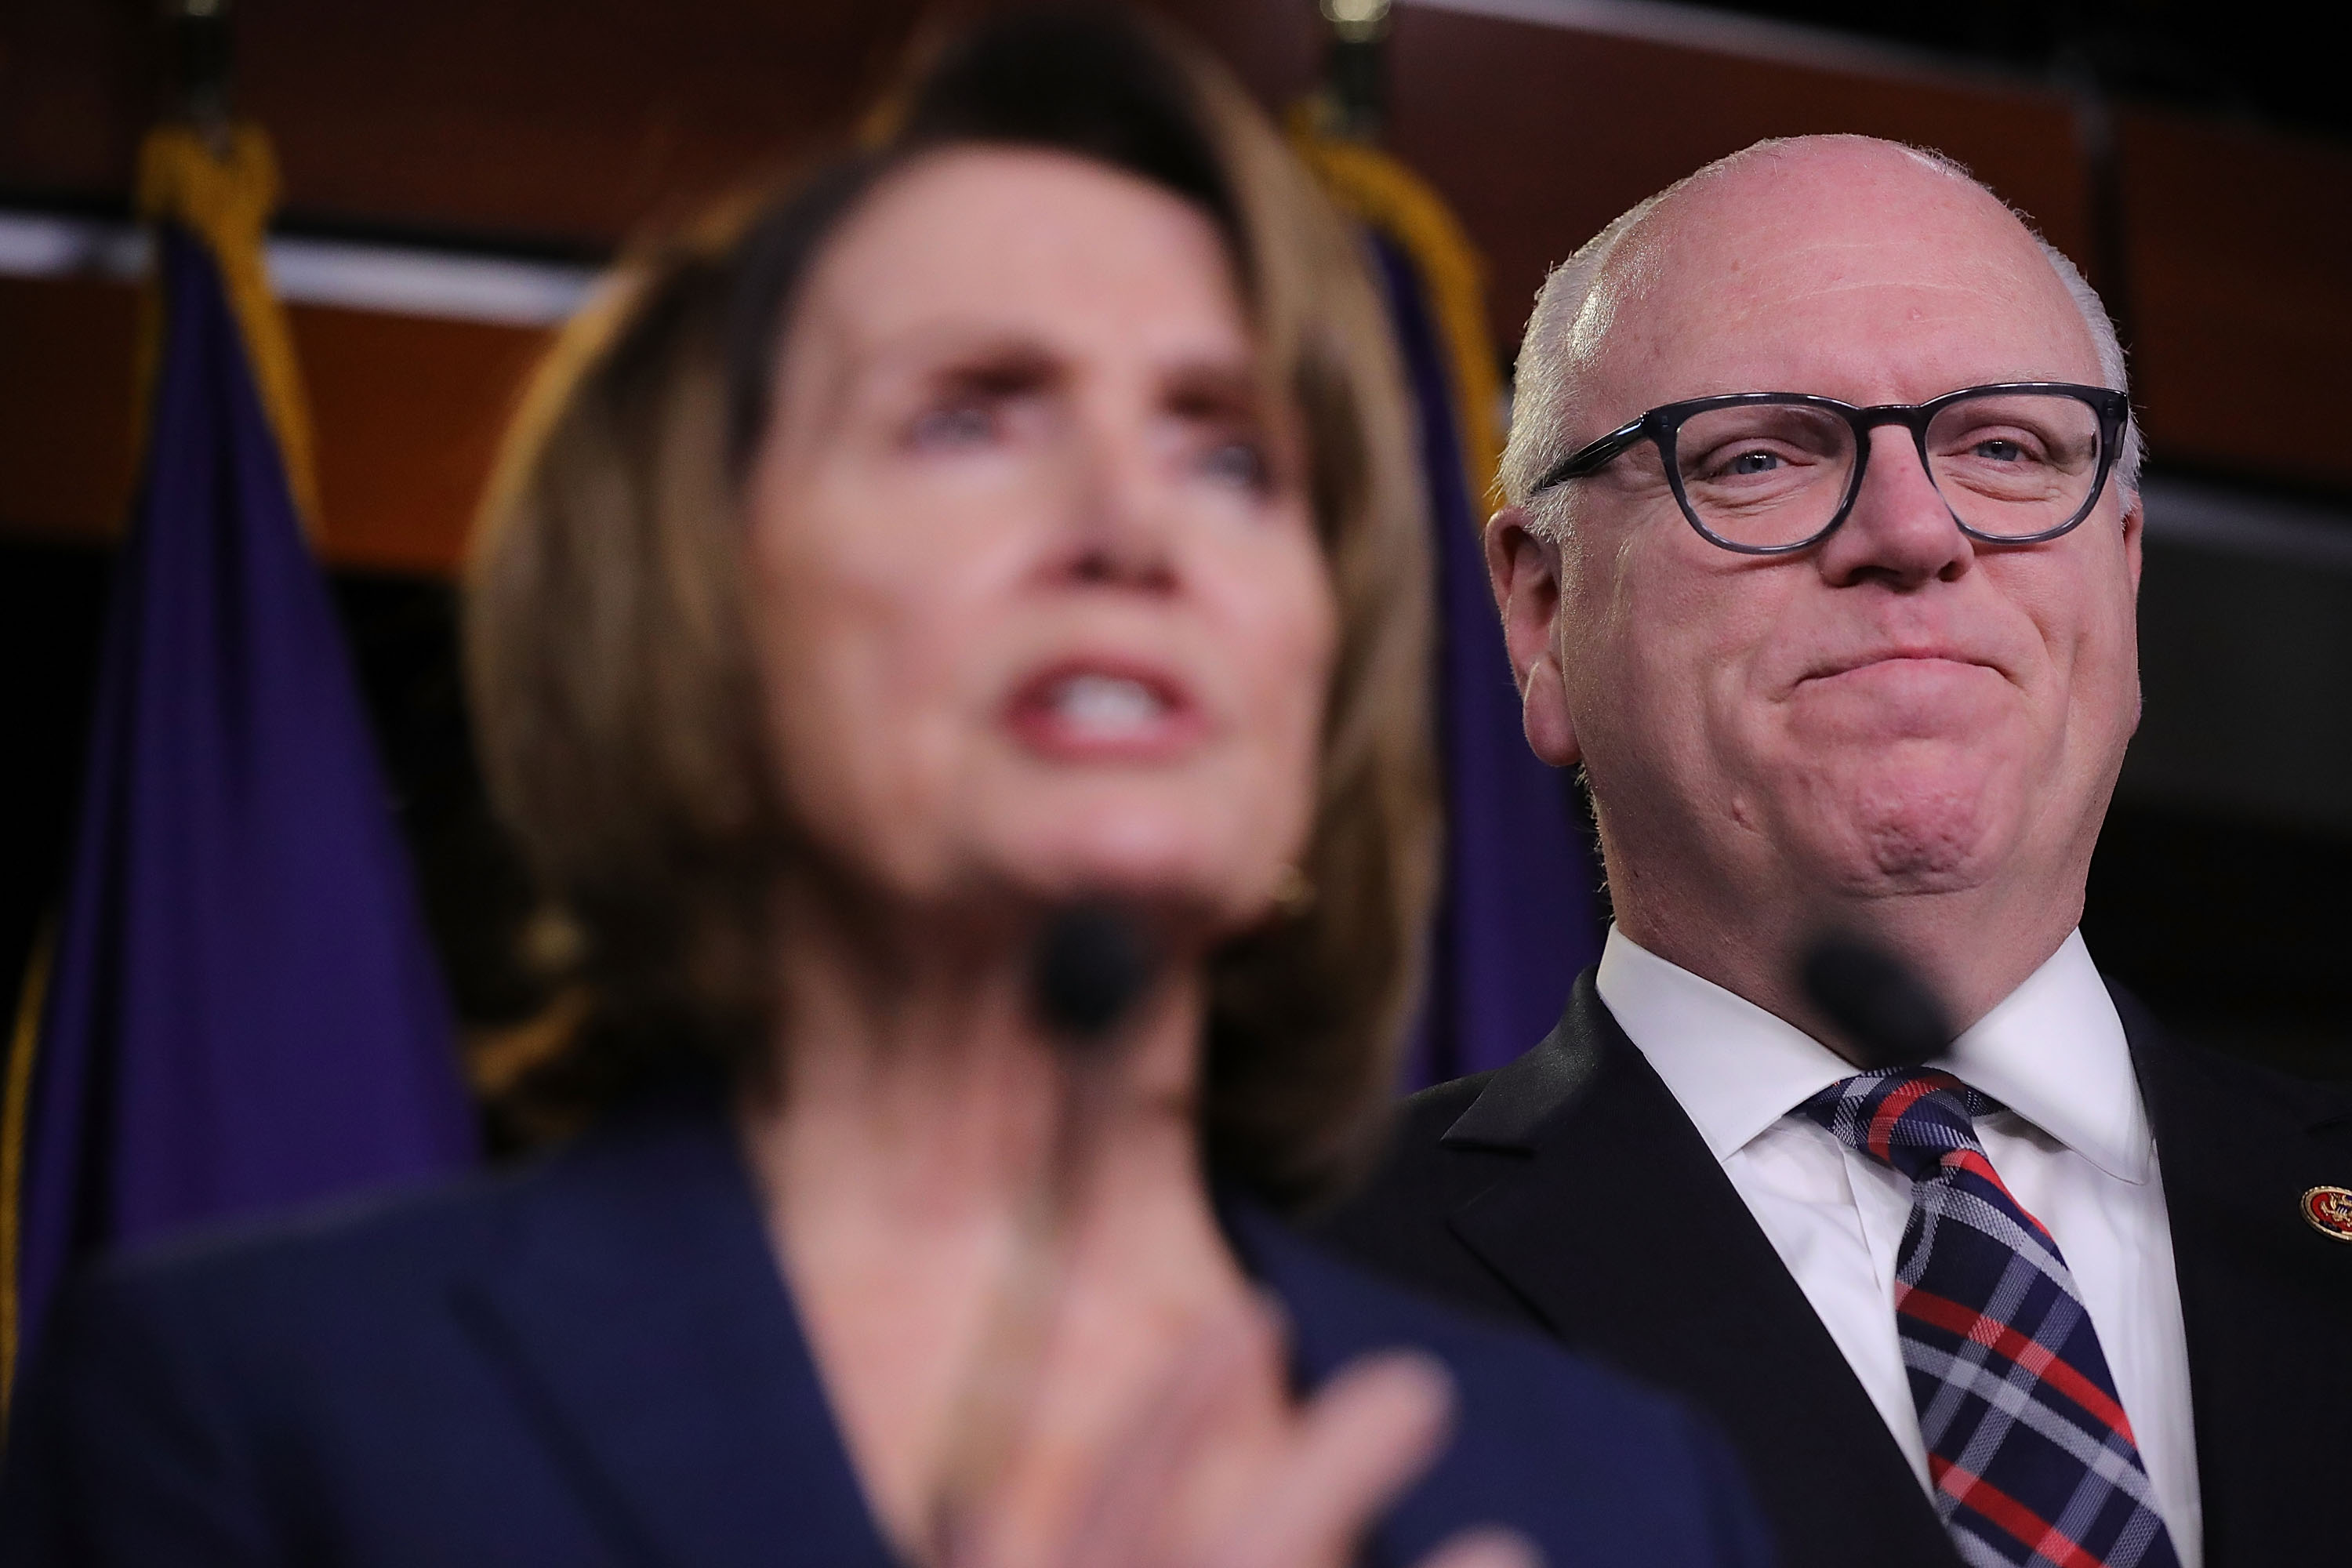 Rep. Joseph Crowley and House Minority Leader Nancy Pelosi following a meeting of the House Democratic caucus at the U.S. Capitol in Washington, D.C., on Jan. 31, 2018.